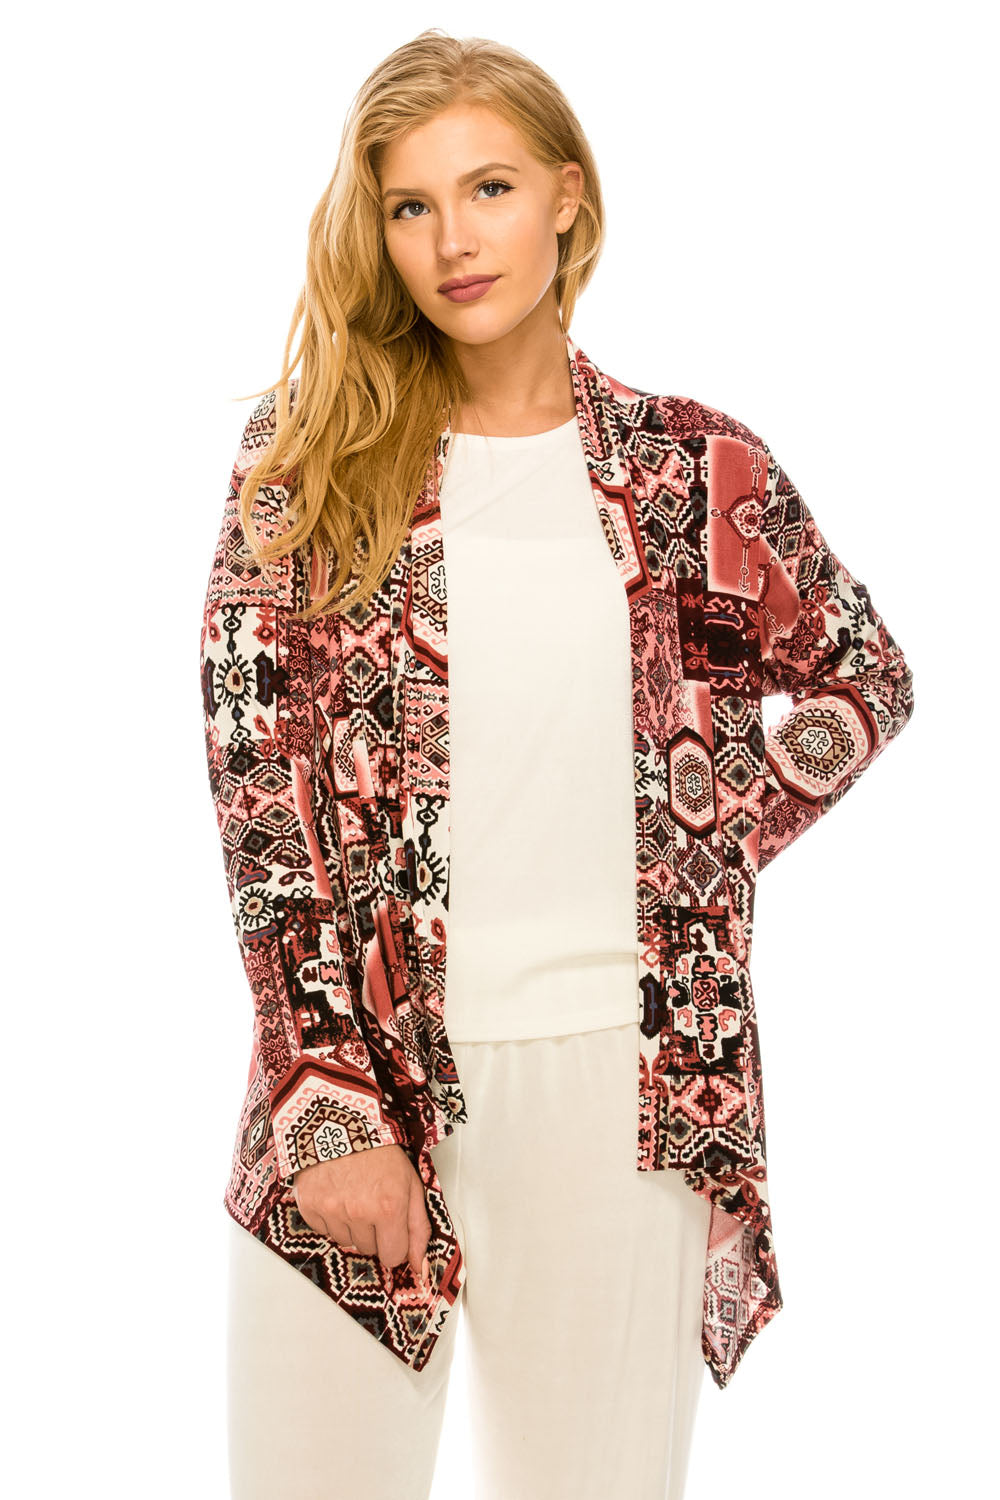 Jostar Women's Stretchy Print Mid Cut Jacket Long Sleeve Print Plus,428BN-LXP-W166,Made in USA.Everyday wrinkle resistant, travel friendly. Comfortable and trendy.